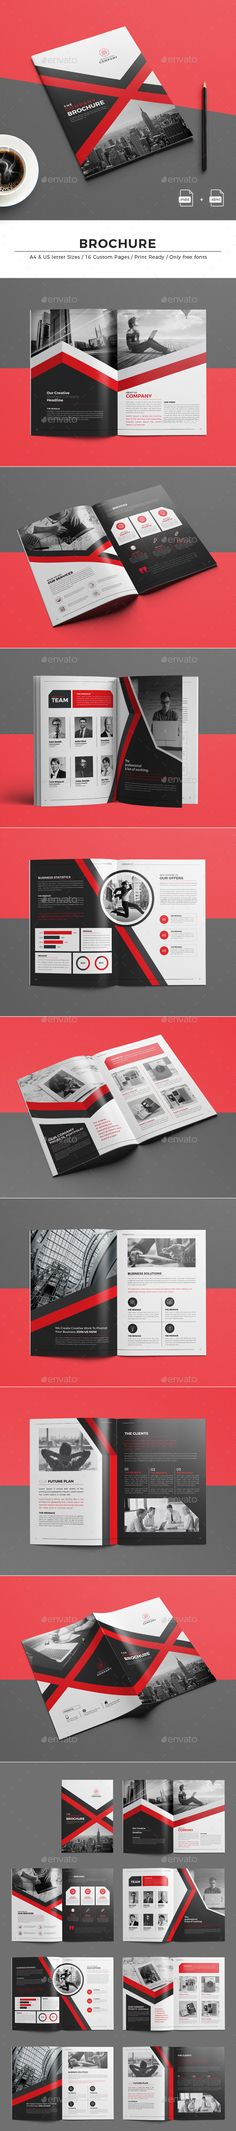 Brochure Template InDesign INDD - 16 Pages A4 & US letter Size